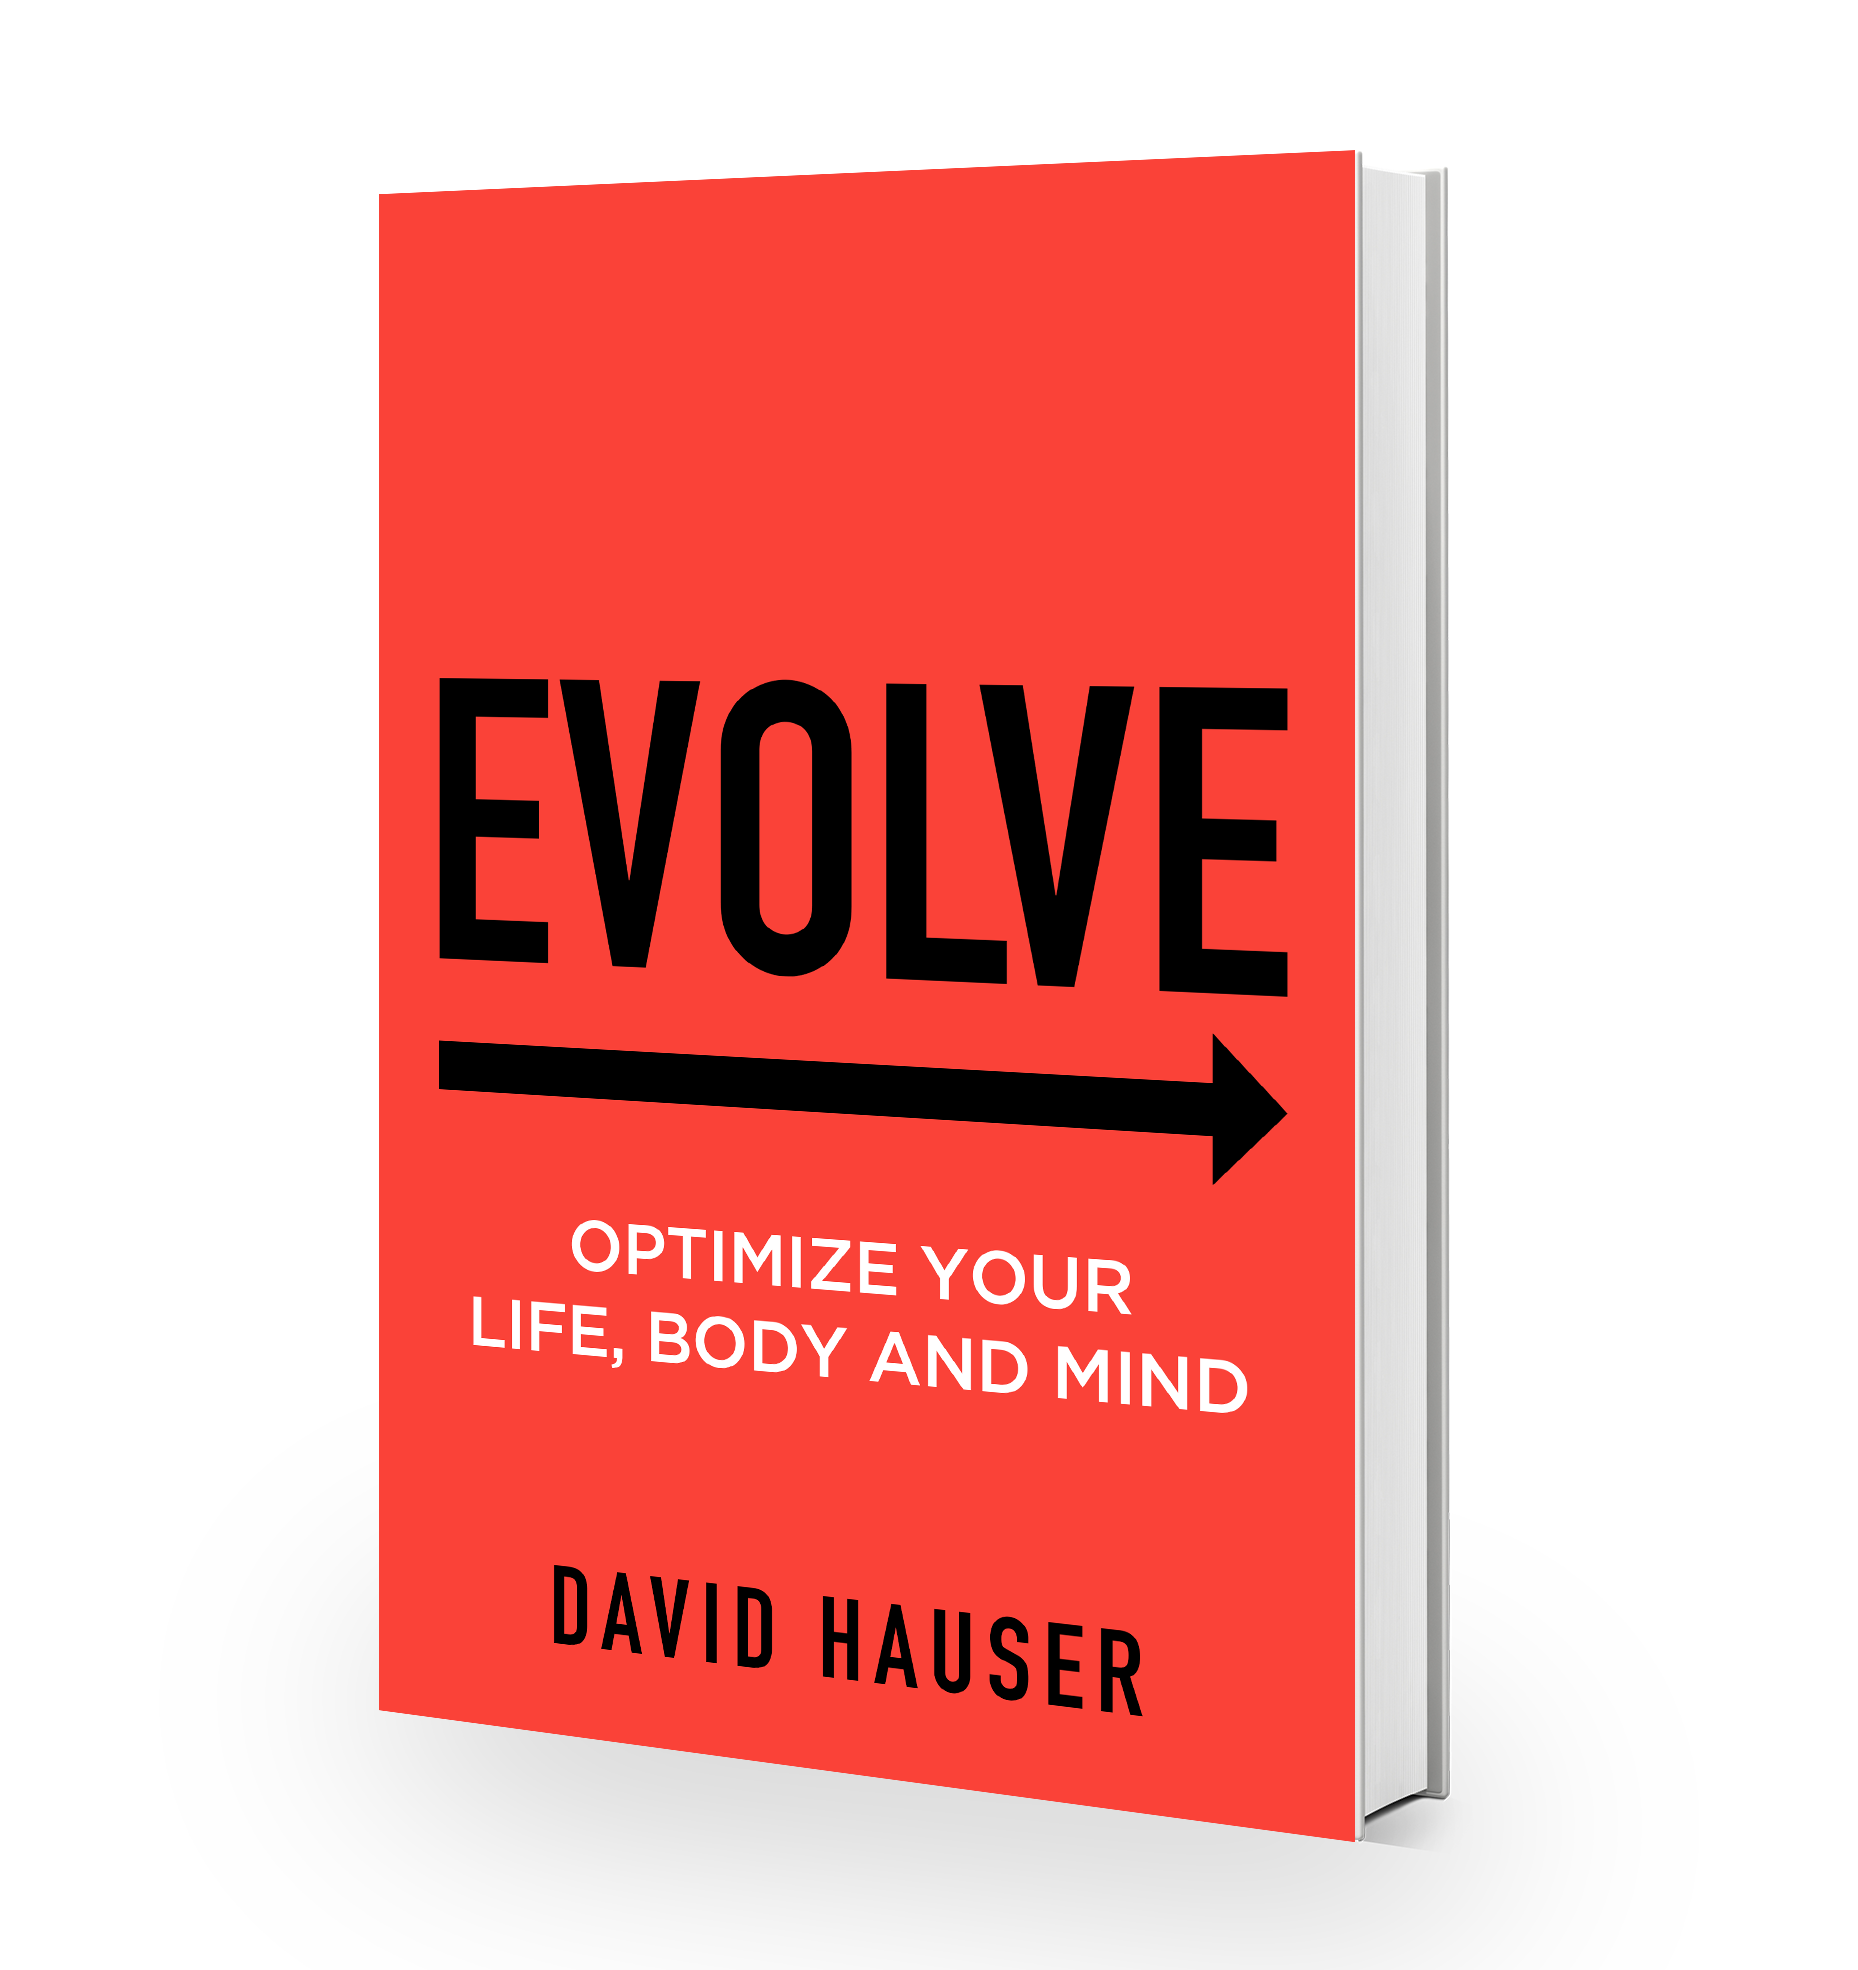 Evolve Book Cover